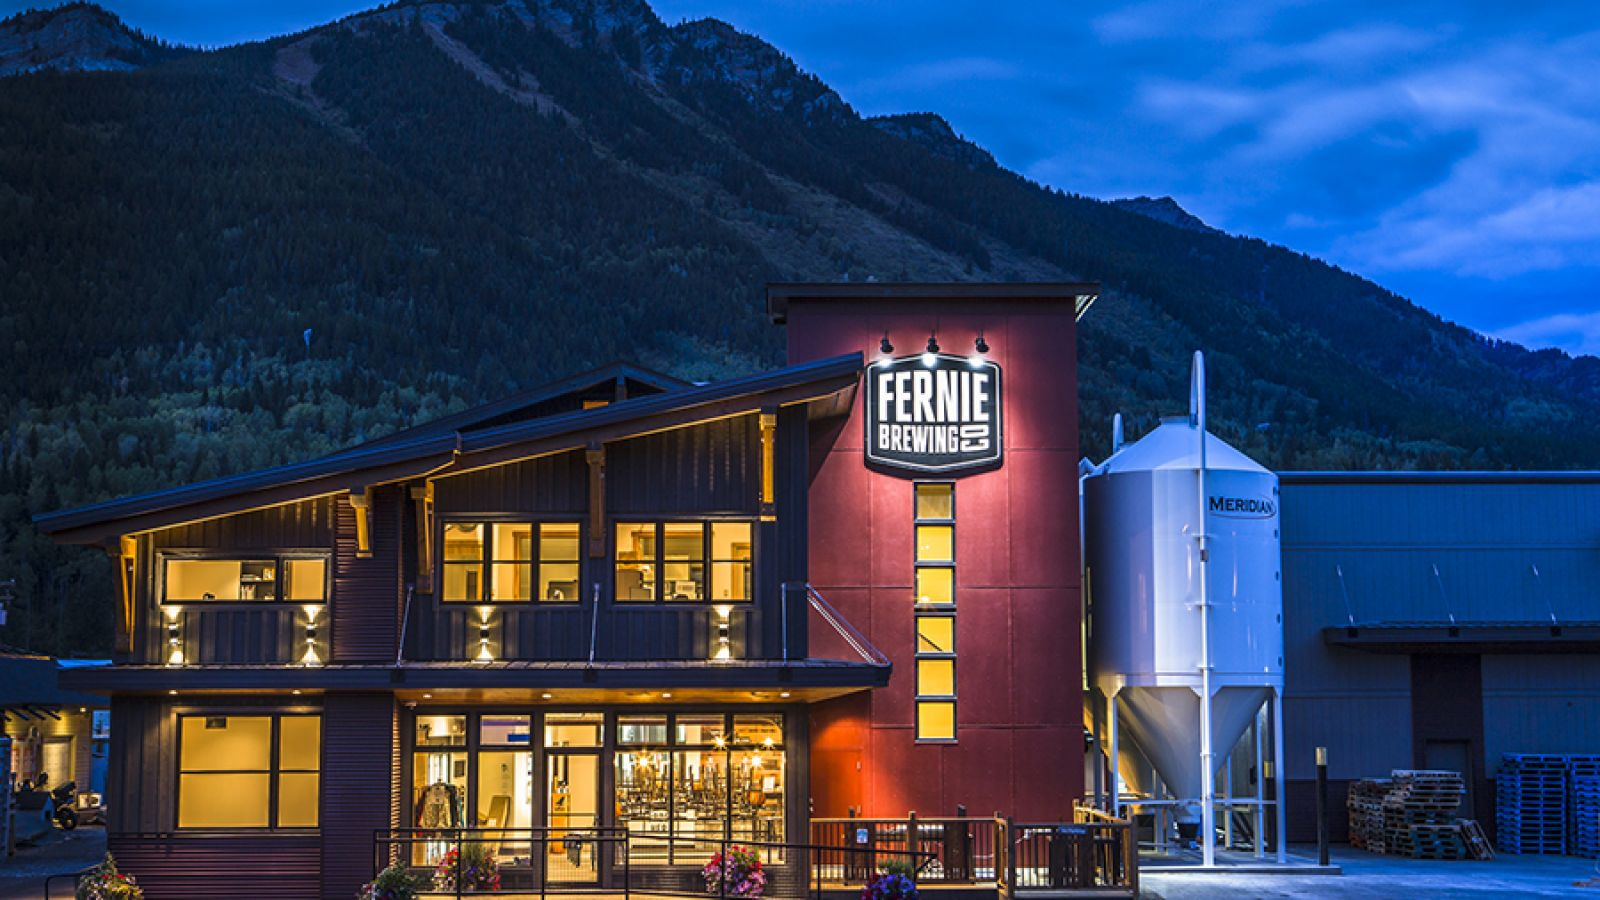 Fernie Brewing Company offers a tasting room and gift shop.